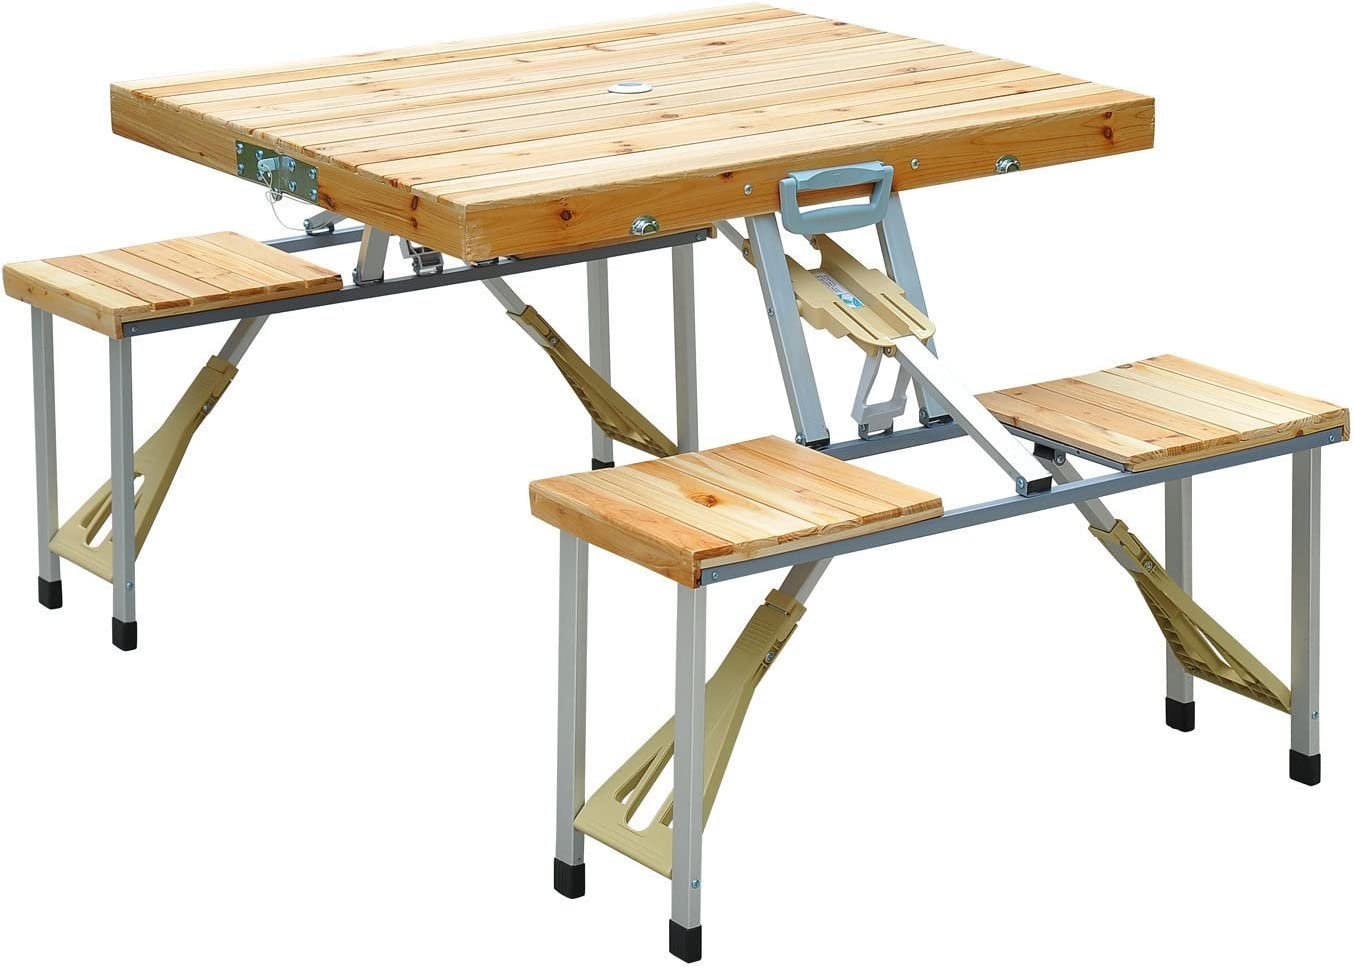 Aluminum Portable Folding Camping Picnic Table with Chair Seat Bench Set Bench Design MAGSHION